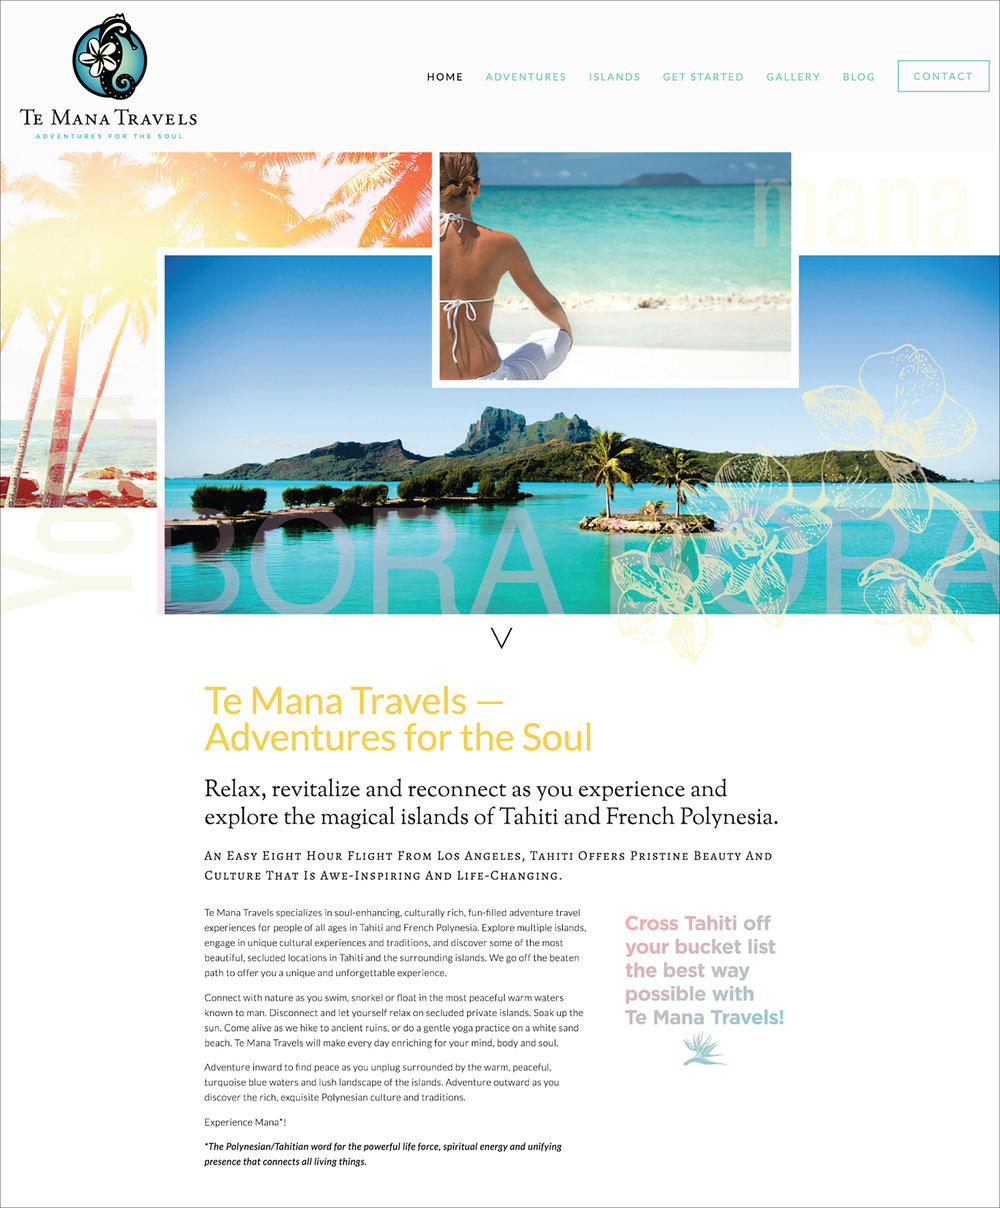 Te Mana Travels Website | Sailboat and yoga adventures to French Polynesia, Tahiti | DesignCode | Austin, Texas